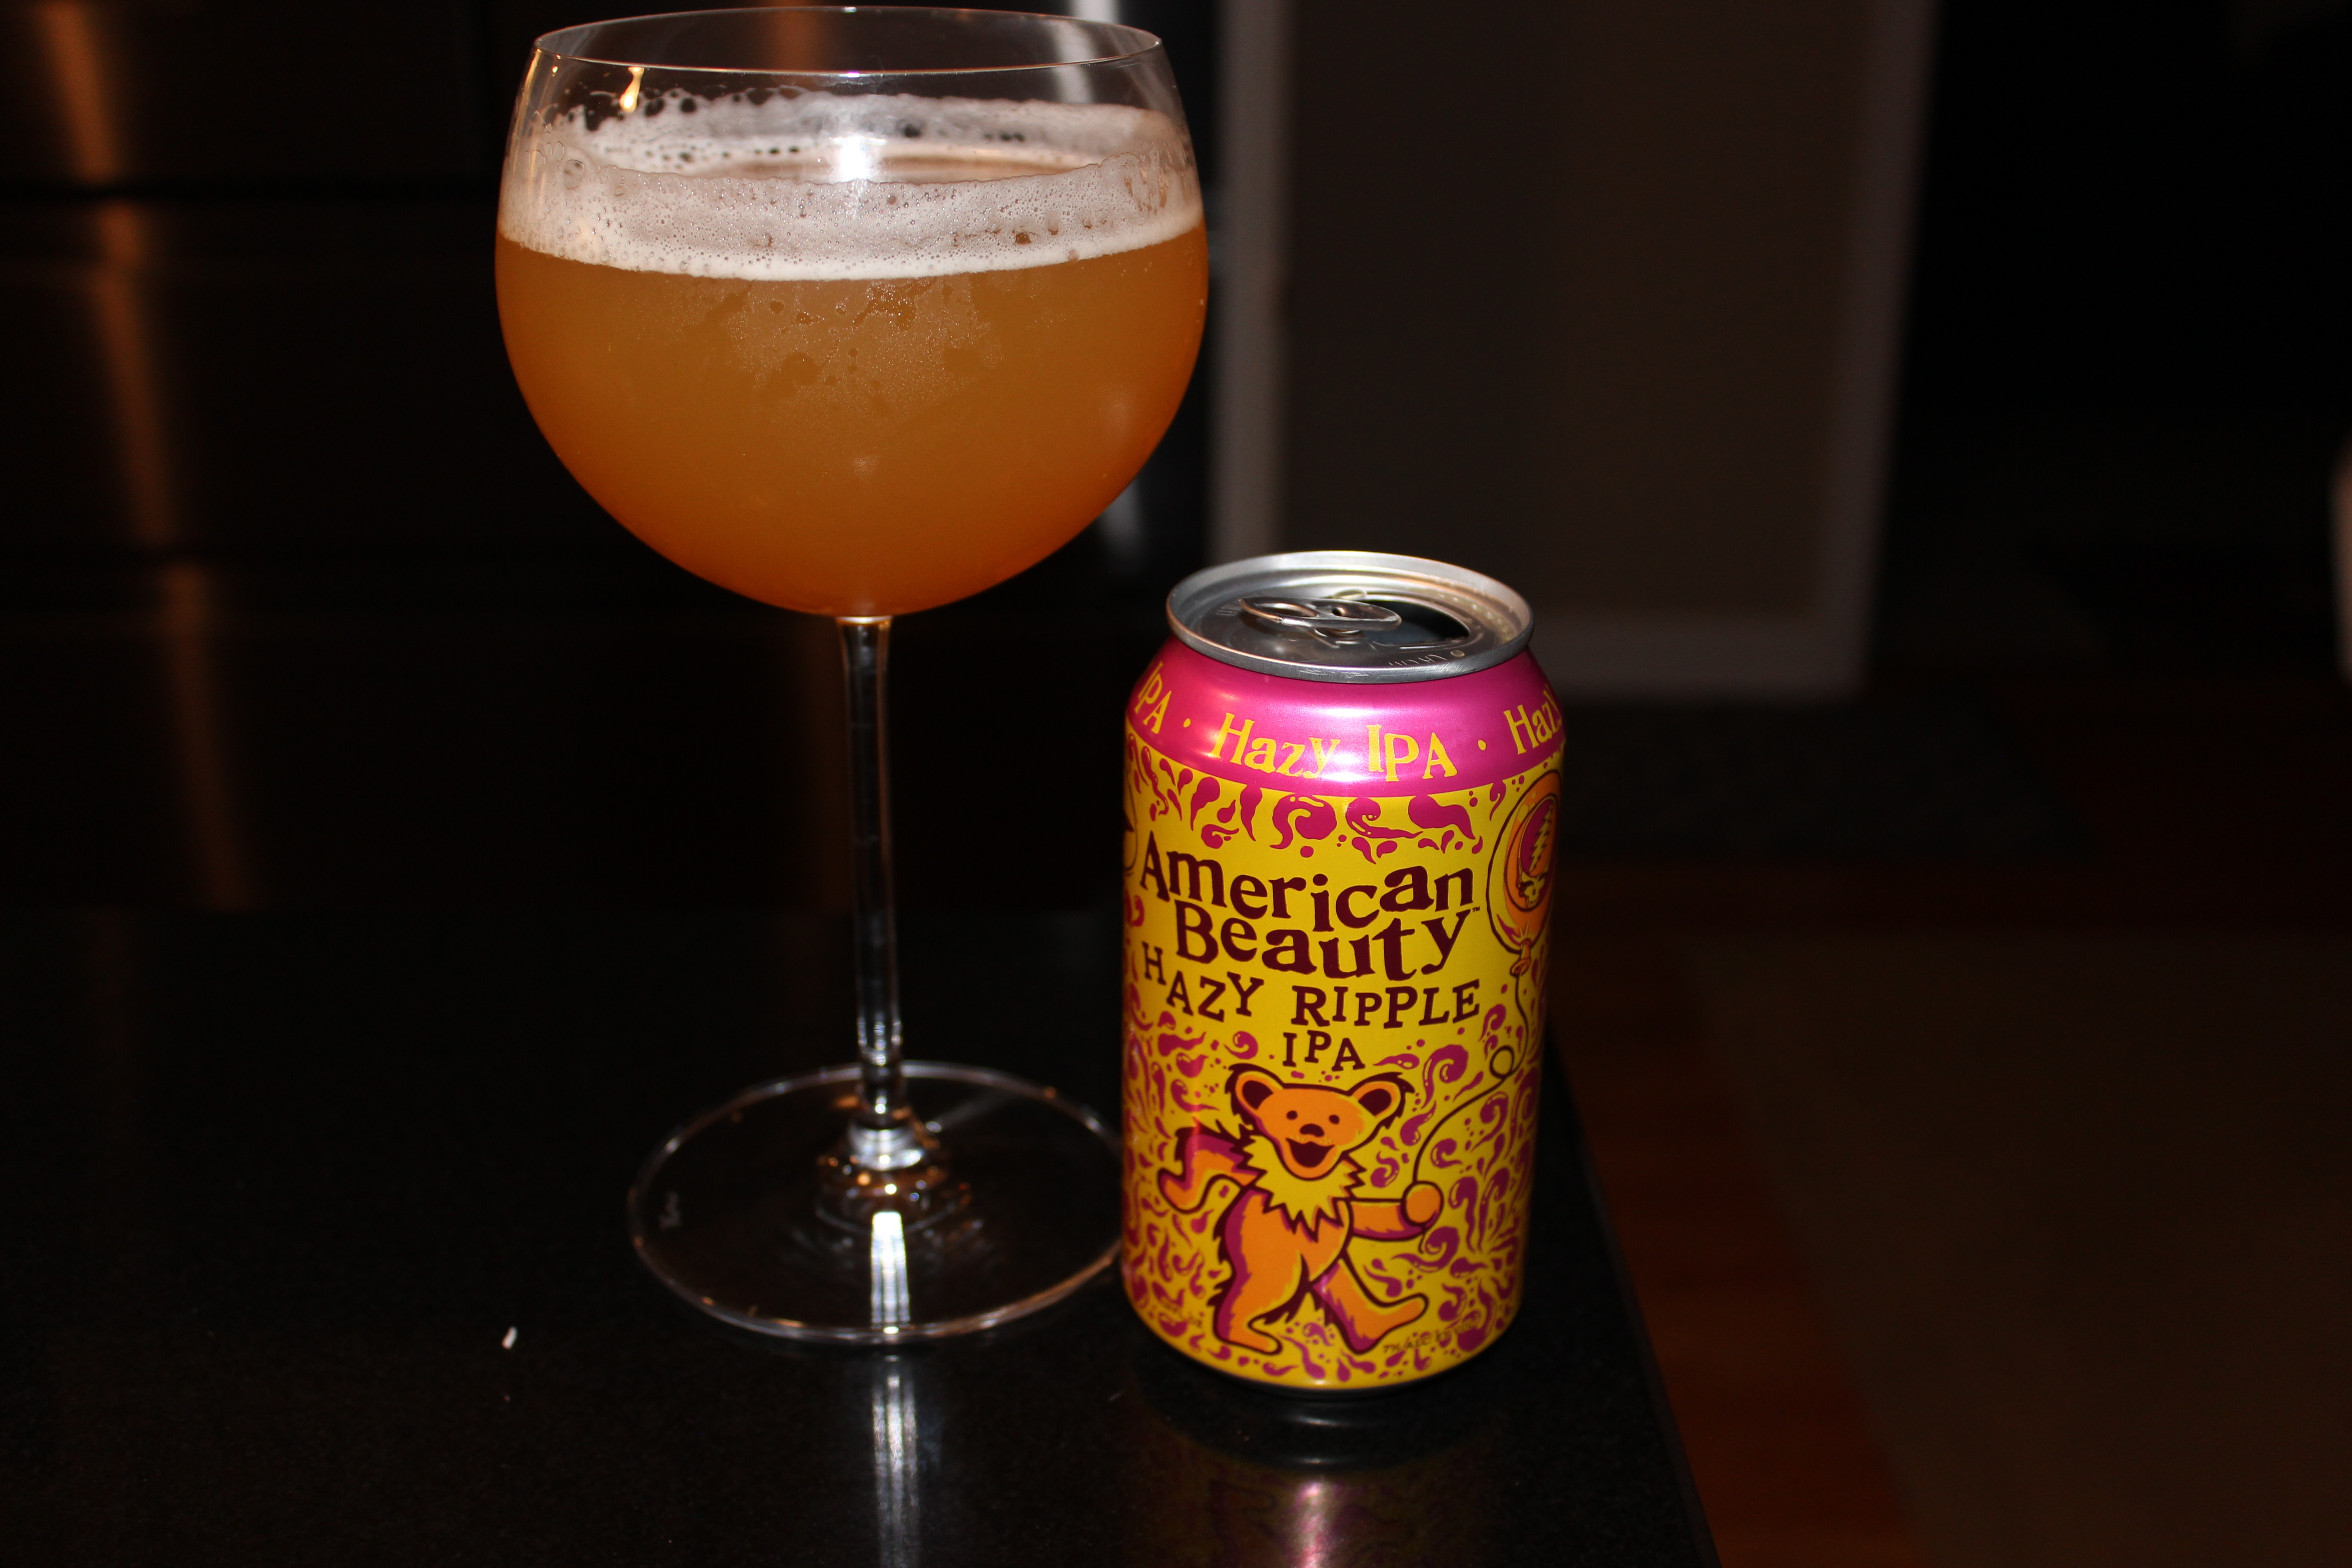 American Beauty Hazy Ripple IPA